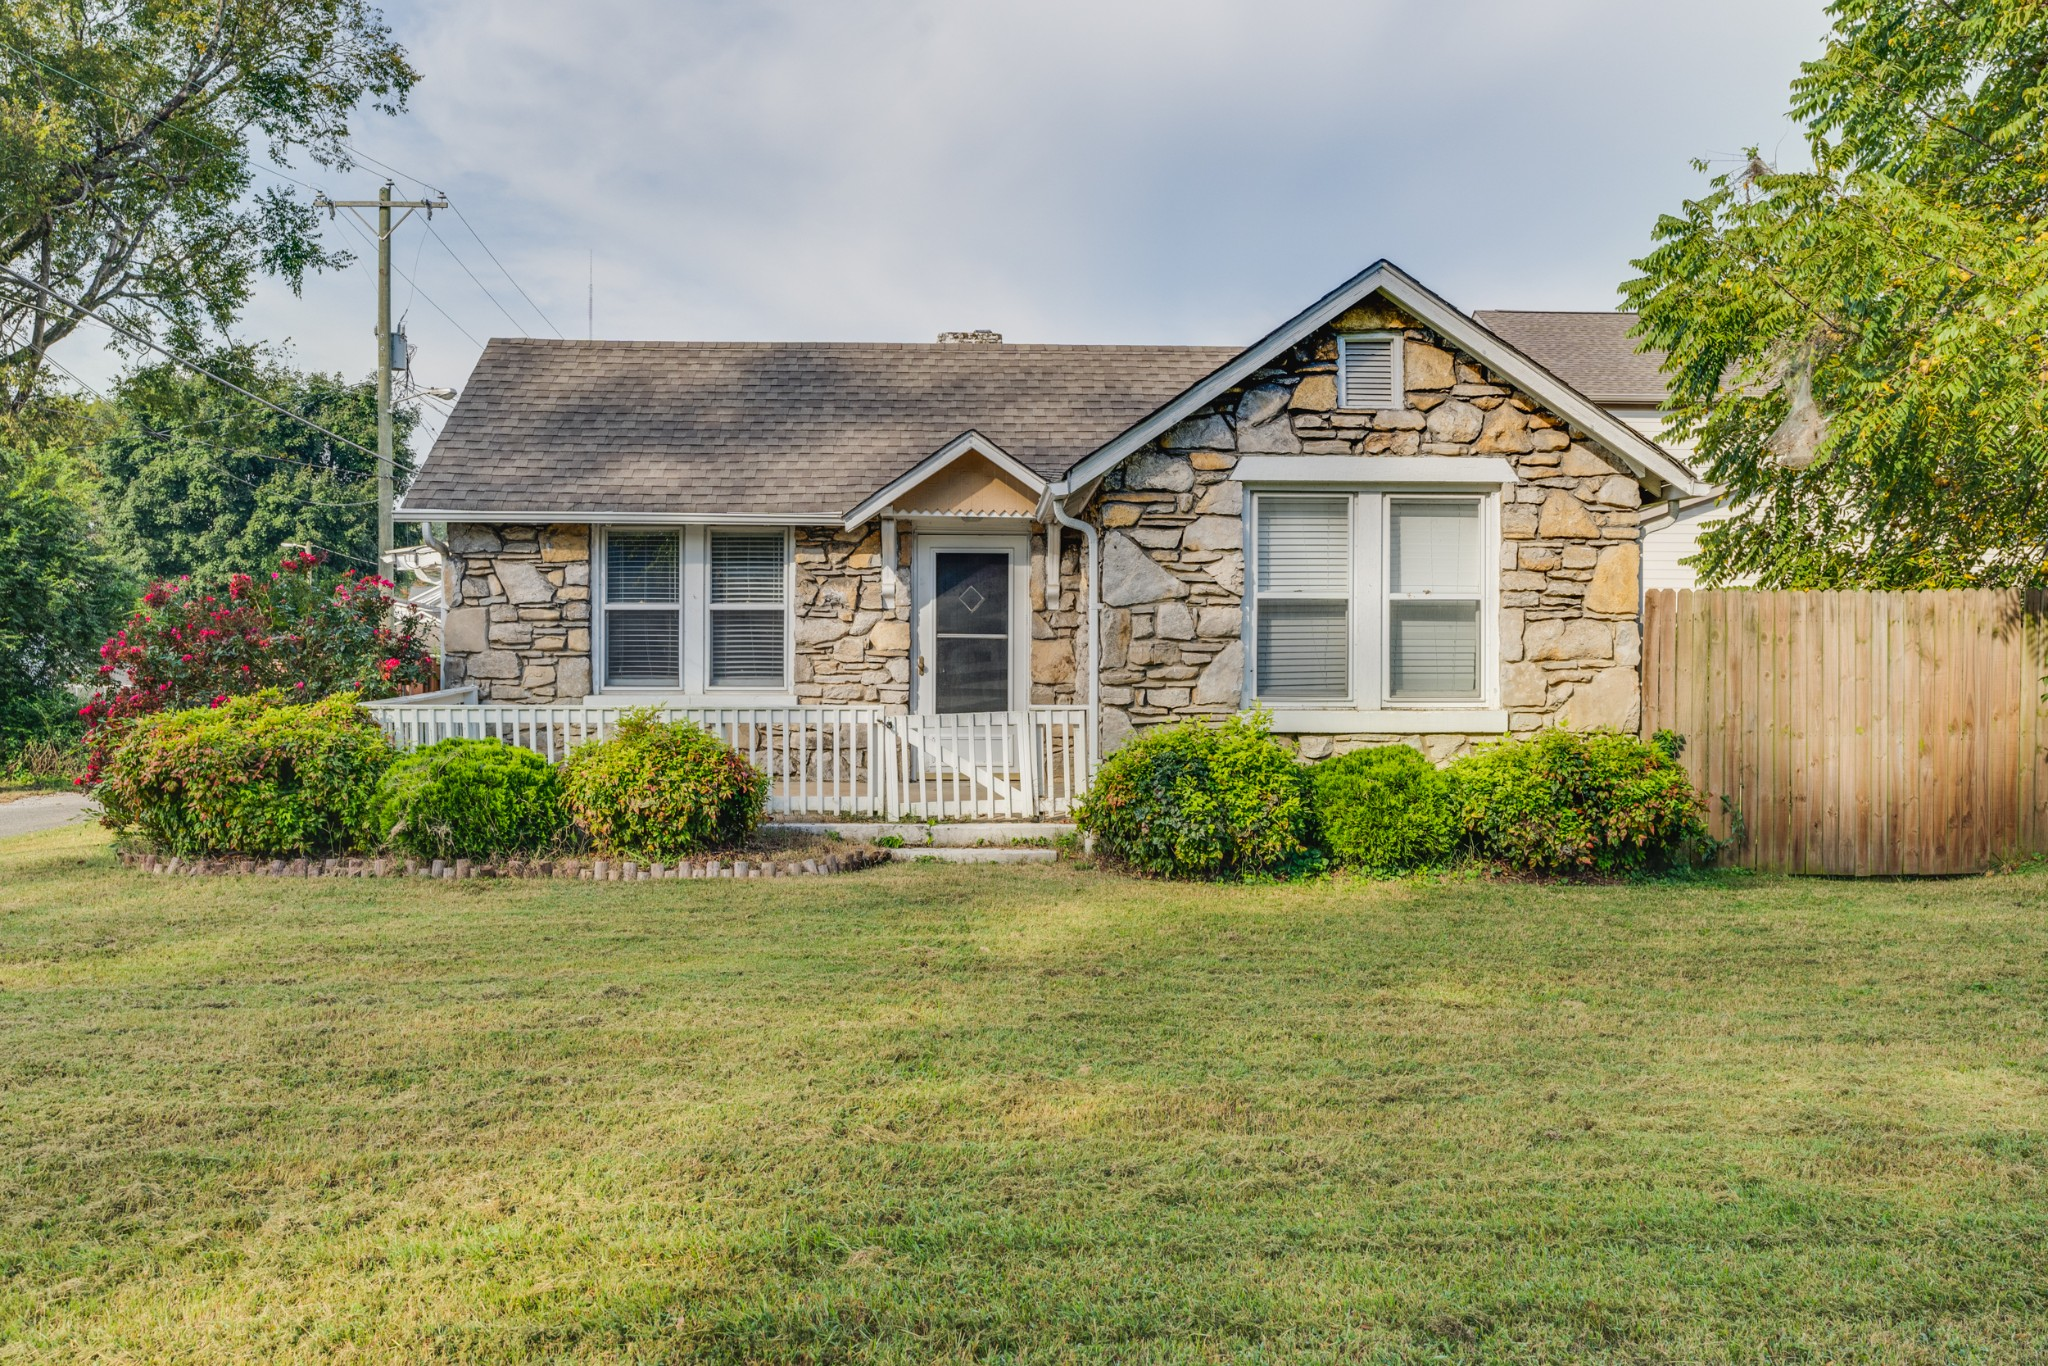 Charming stone cottage in the heart of Sylvan Park on a rare corner lot with alley access! Gorgeous original hardwoods and fireplace in a spacious living room. New plumbing mainline (2021), updated kitchen and bathroom with granite counters and Bosch appliances (2015), HVAC (2016), roof (2014), new side porch. Fenced in backyard and easy off-street parking. The investment opportunities are endless– renovate, rent, or build in one of Nashville's hottest neighborhoods.